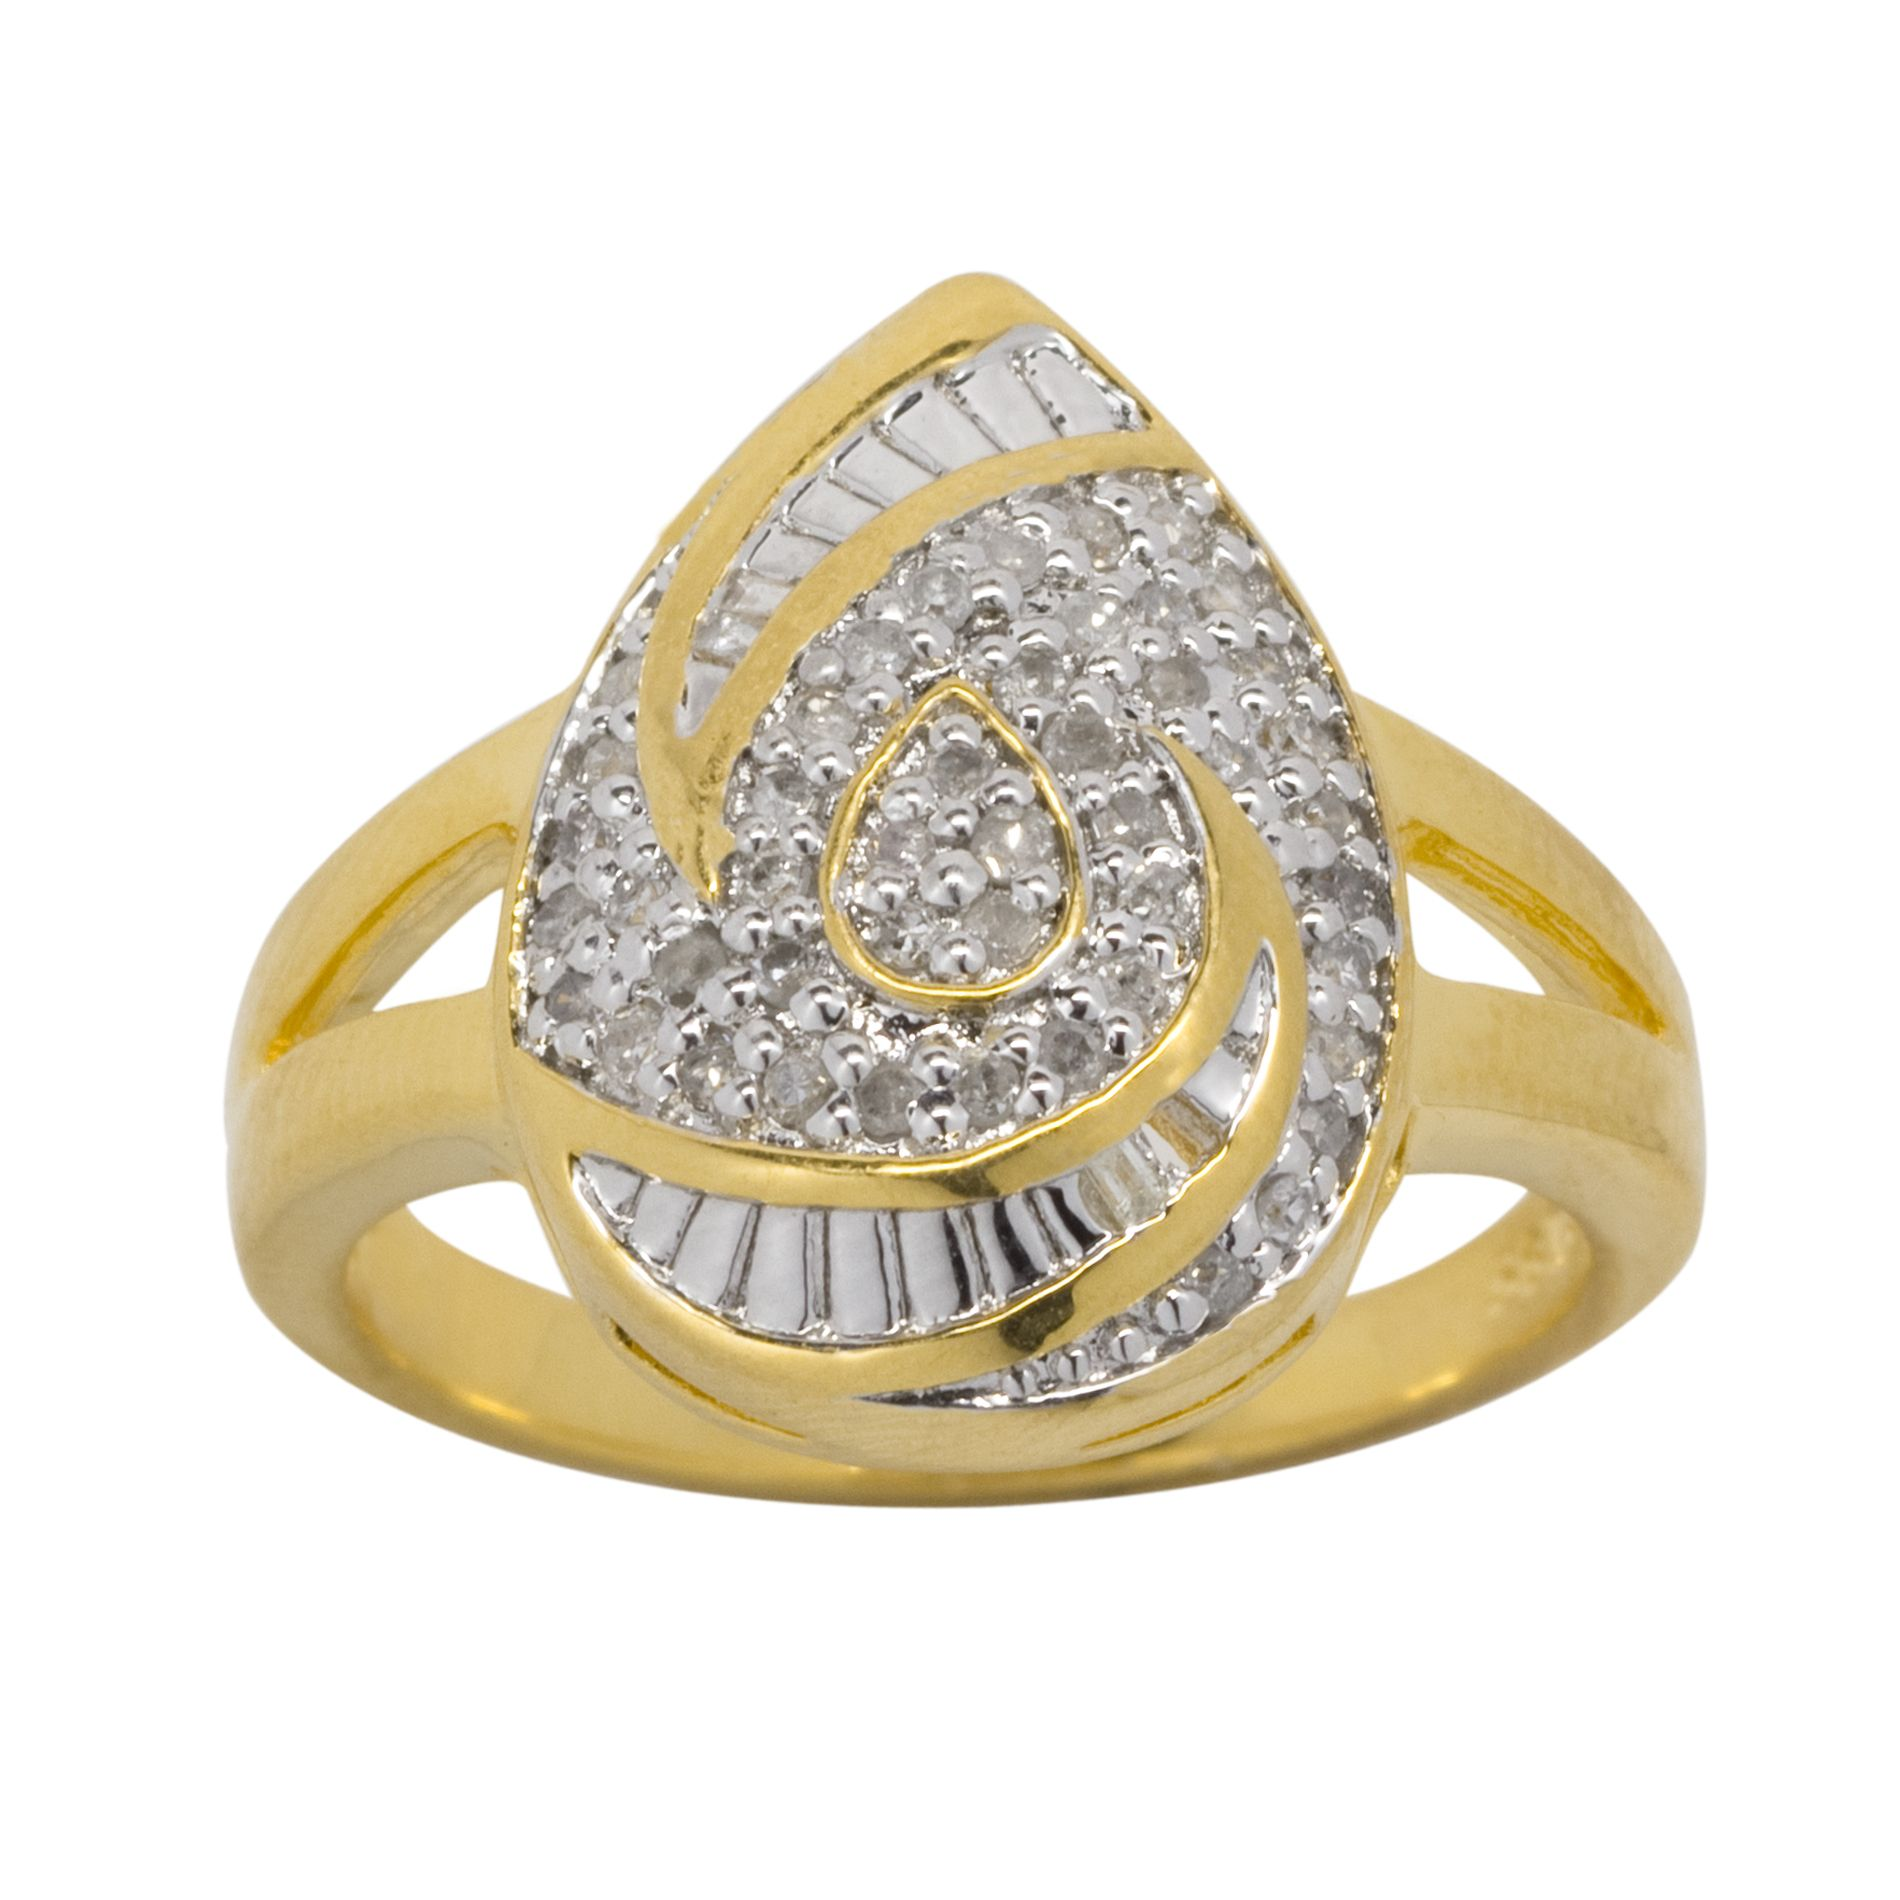 1/4cttw Diamond Ring in 18k Gold over Sterling Silver